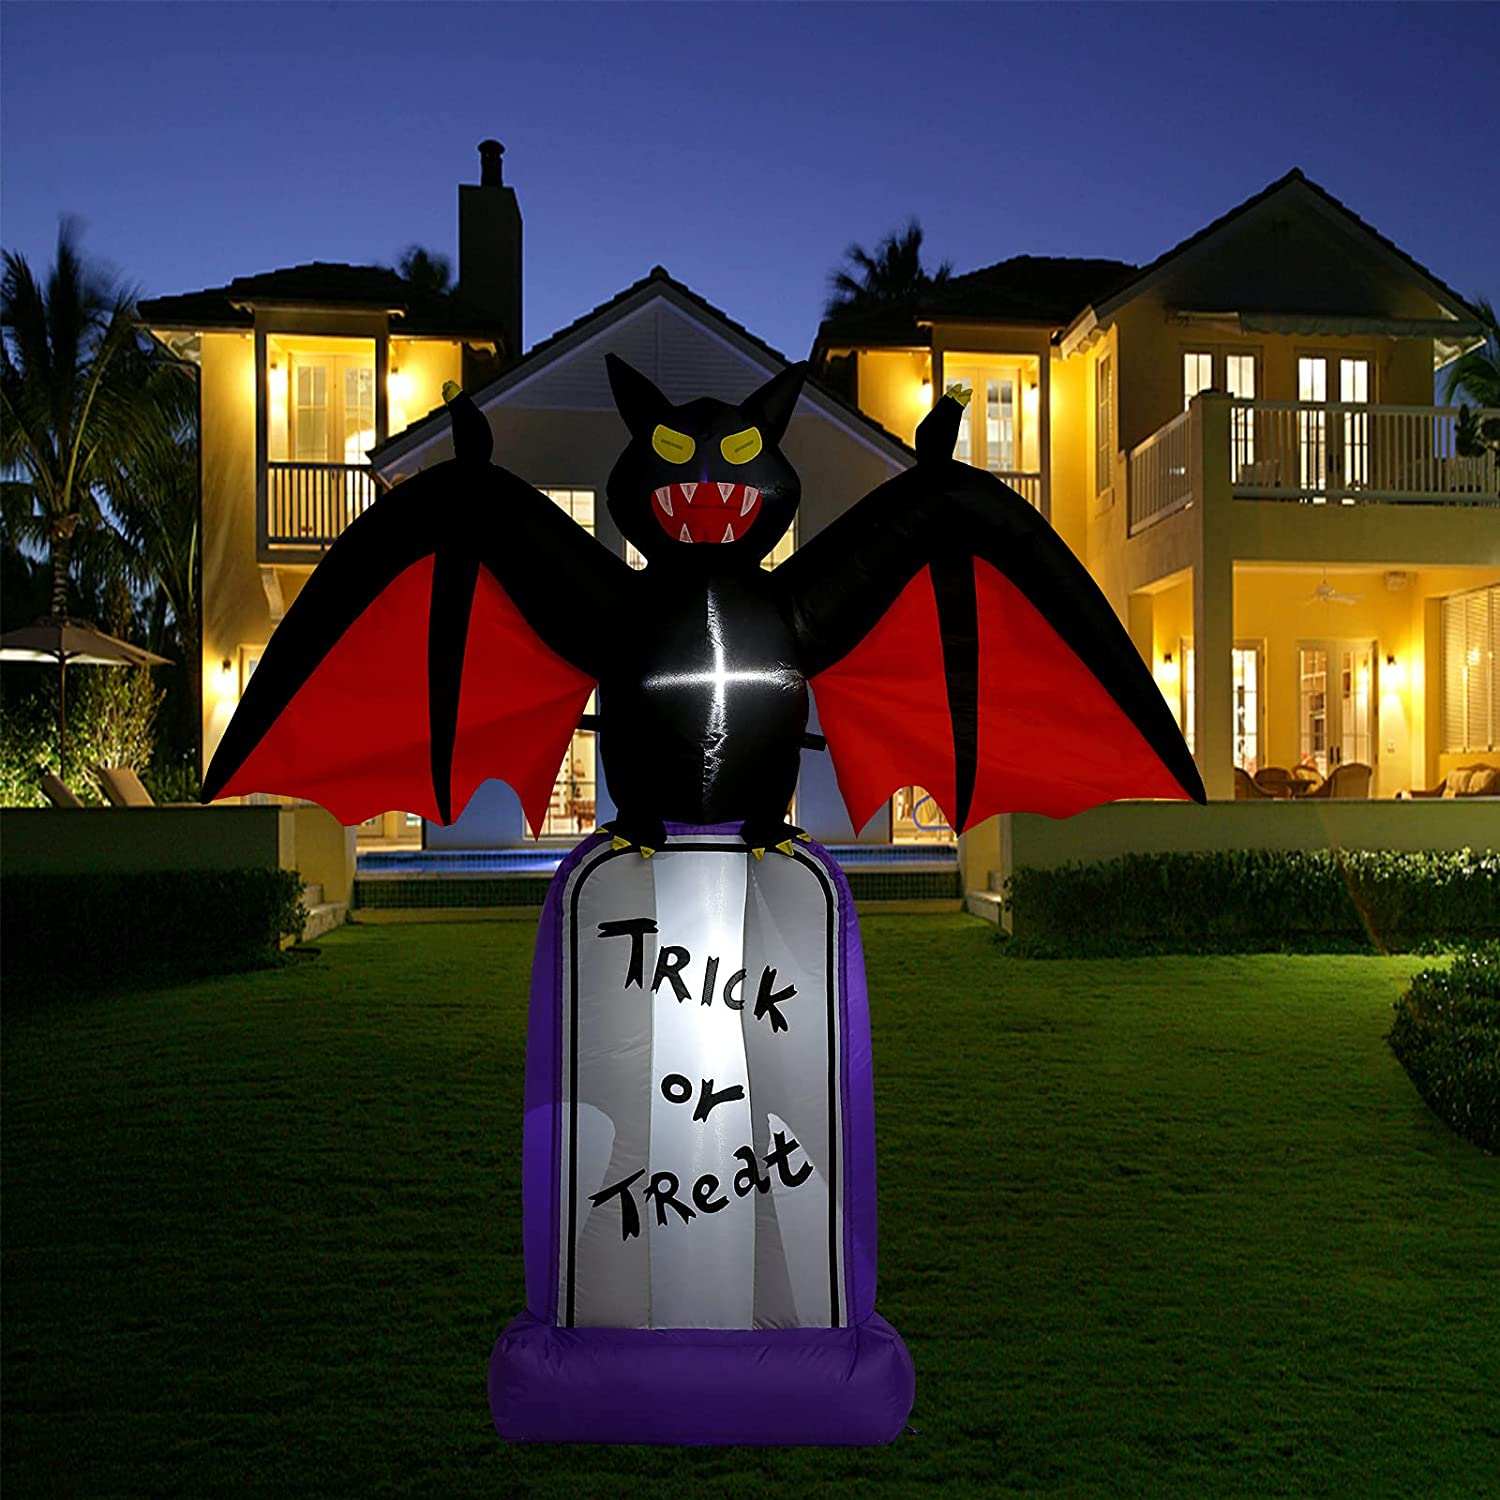 Halloween Inflatable Fort Worth Mall Outdoor Decoration 4 FT in New Free Shipping Tombstone Bat wi